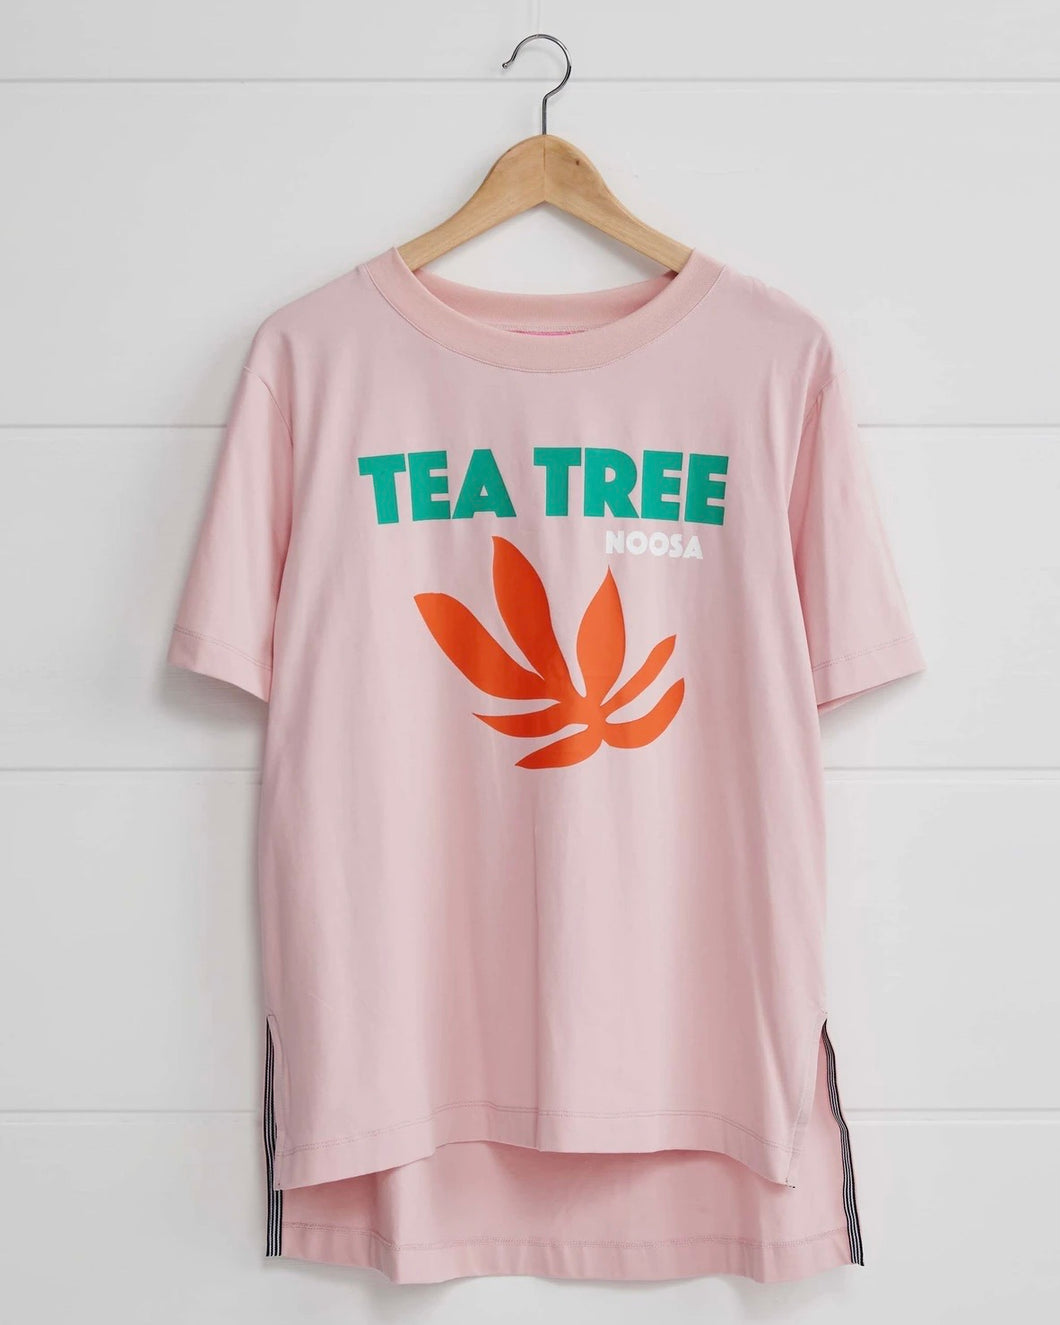 Tea Tree Noosa T-shirt by Binny